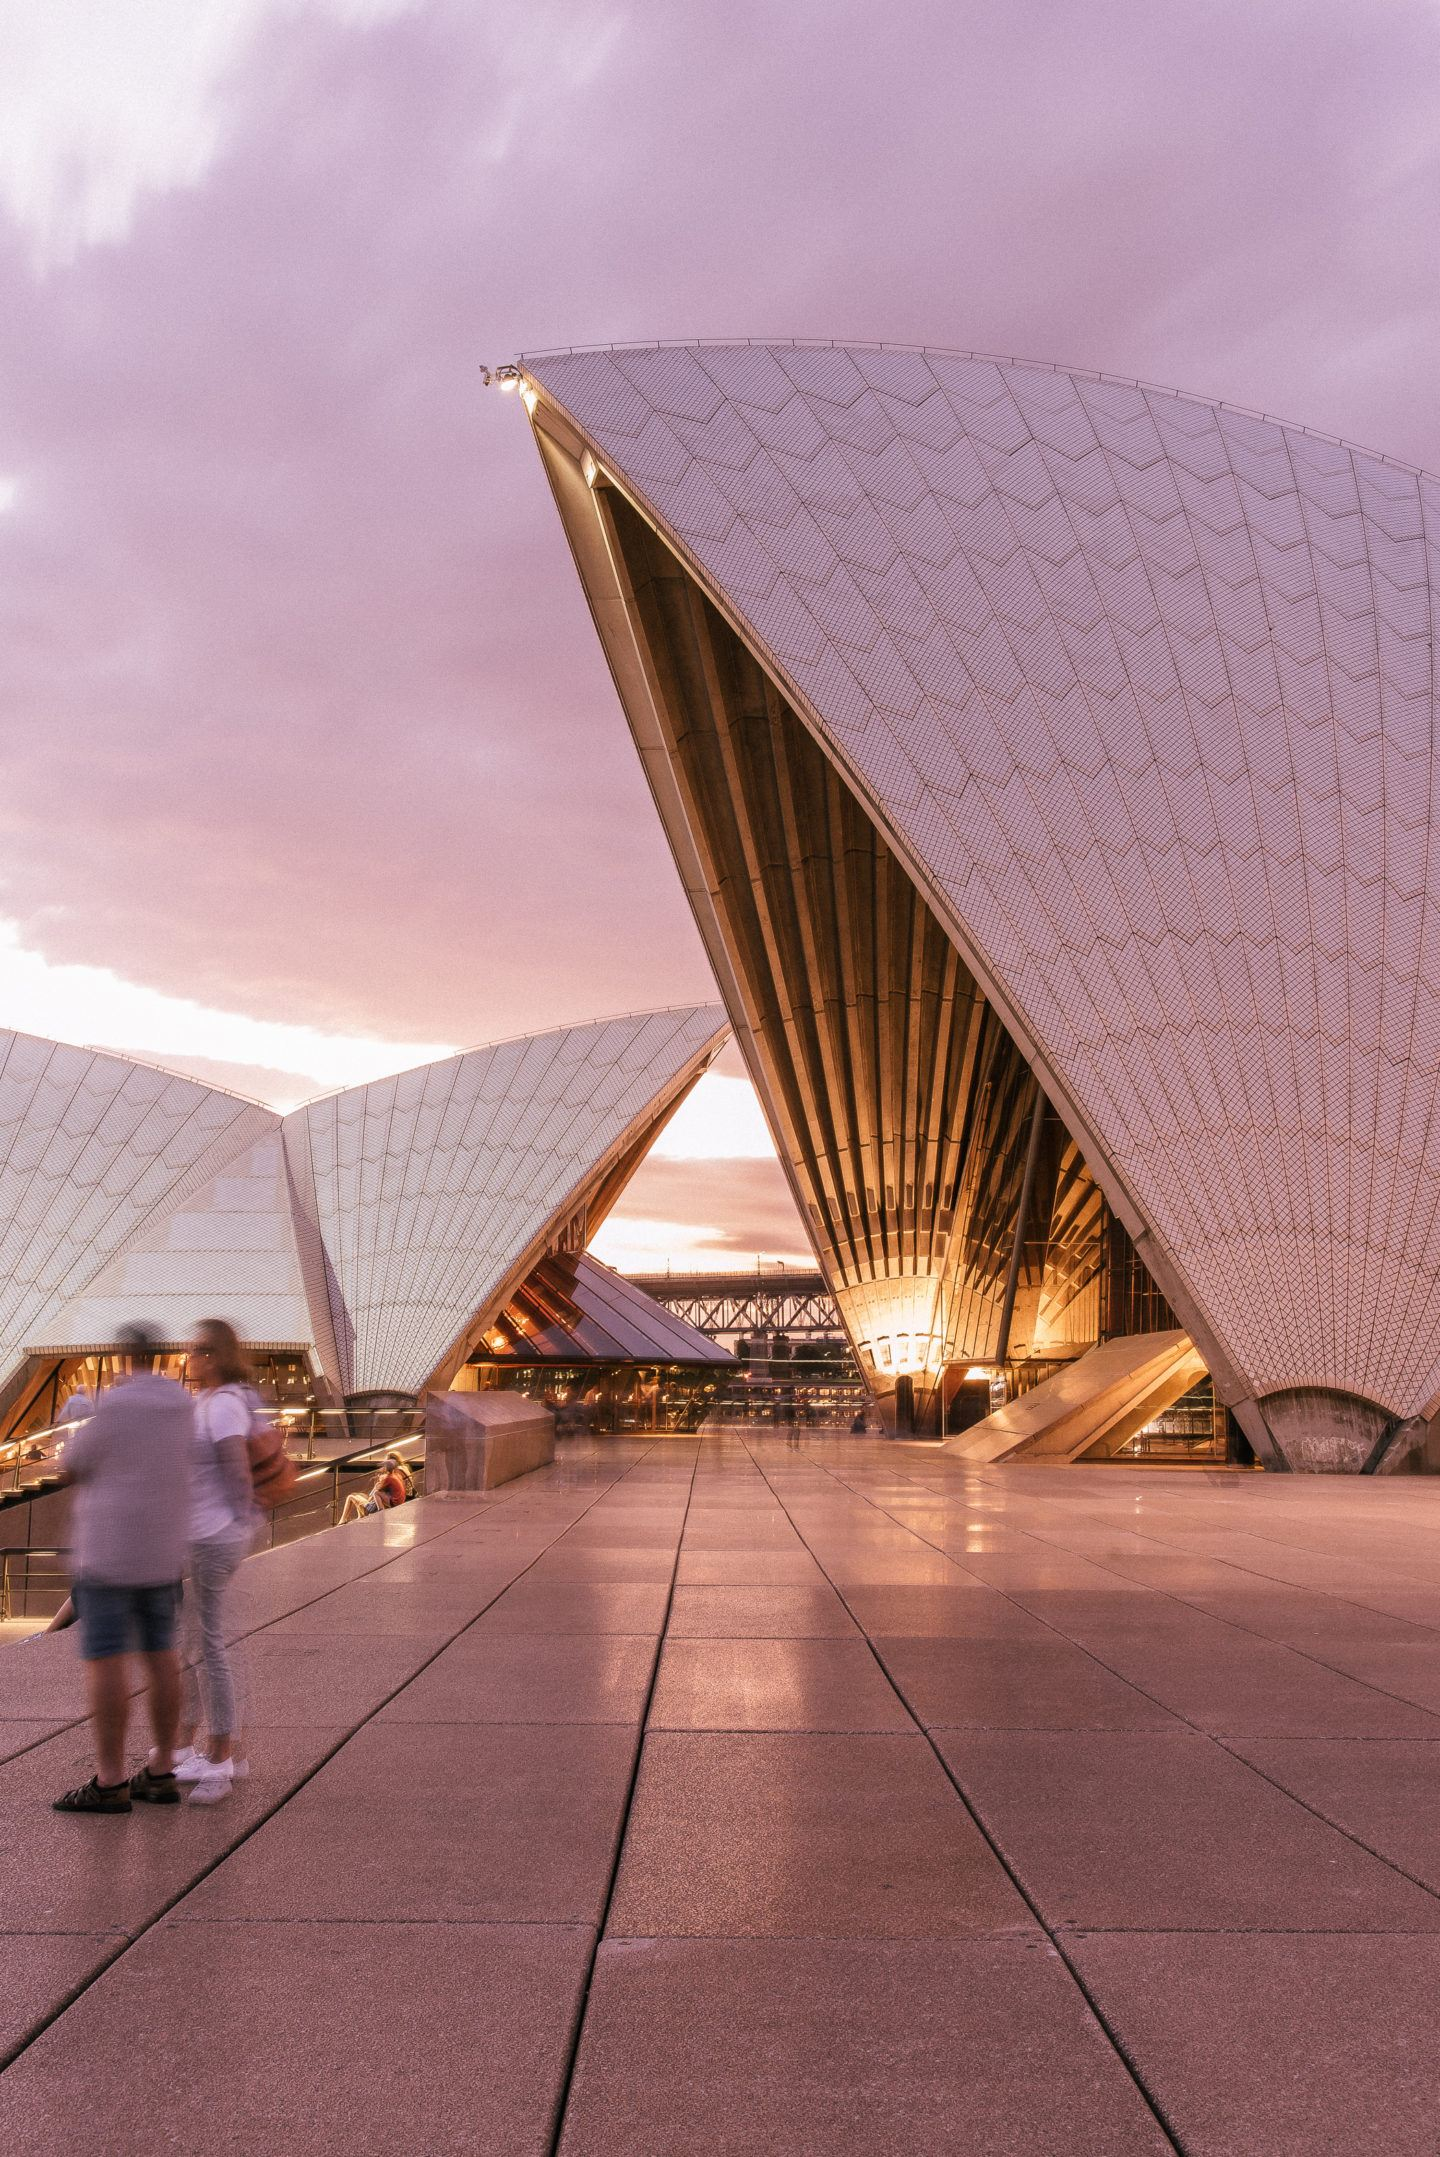 Things to do in Sydney: Sydney Travel Guide